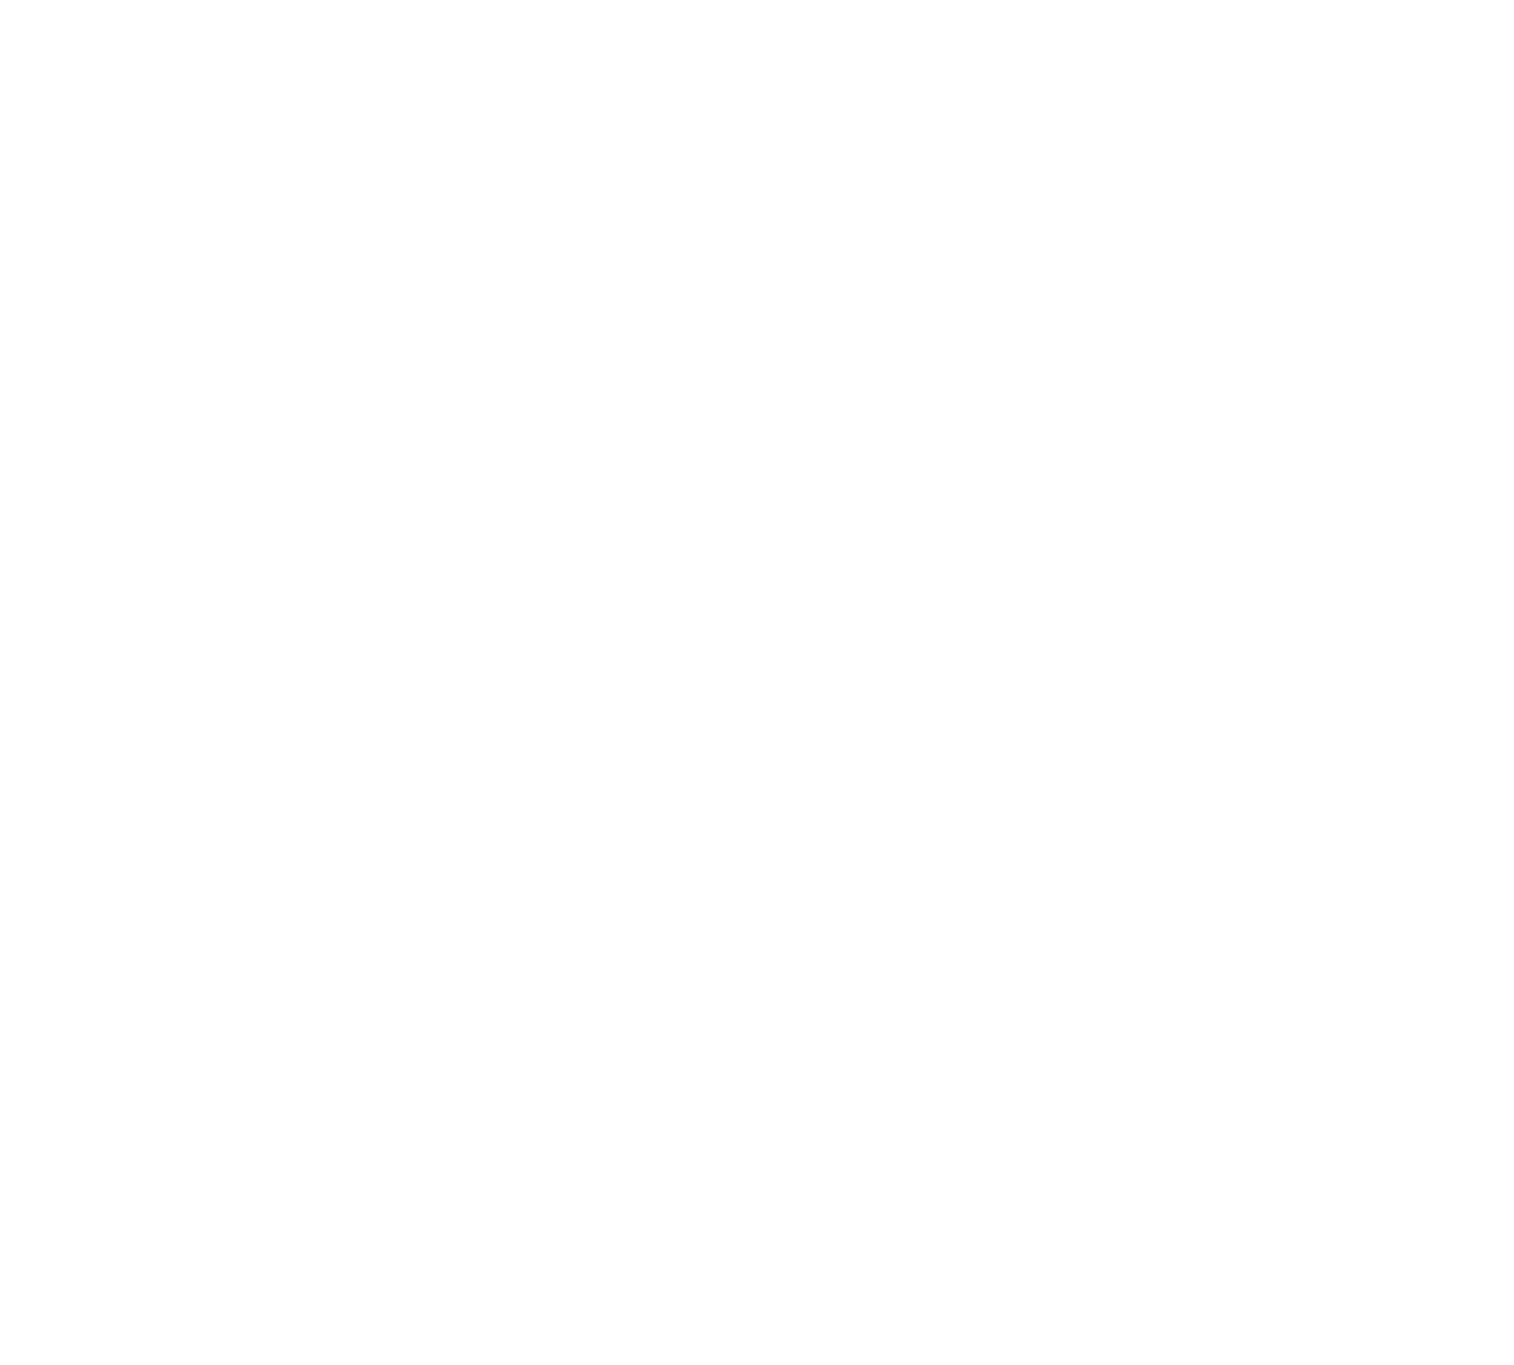 Veeam Service Provider of the Year